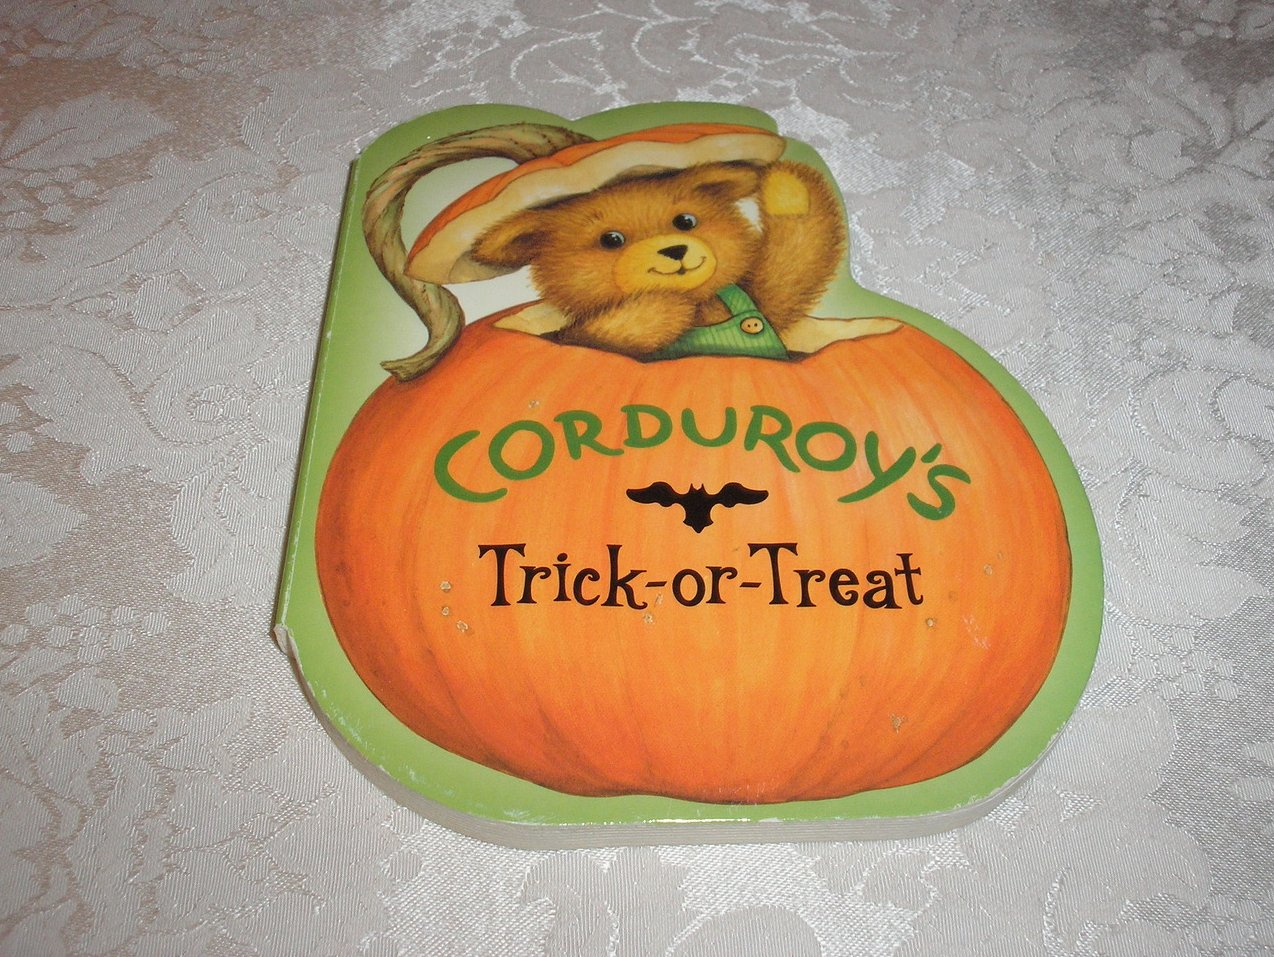 Corduroy's Trick-or-Treat good board book